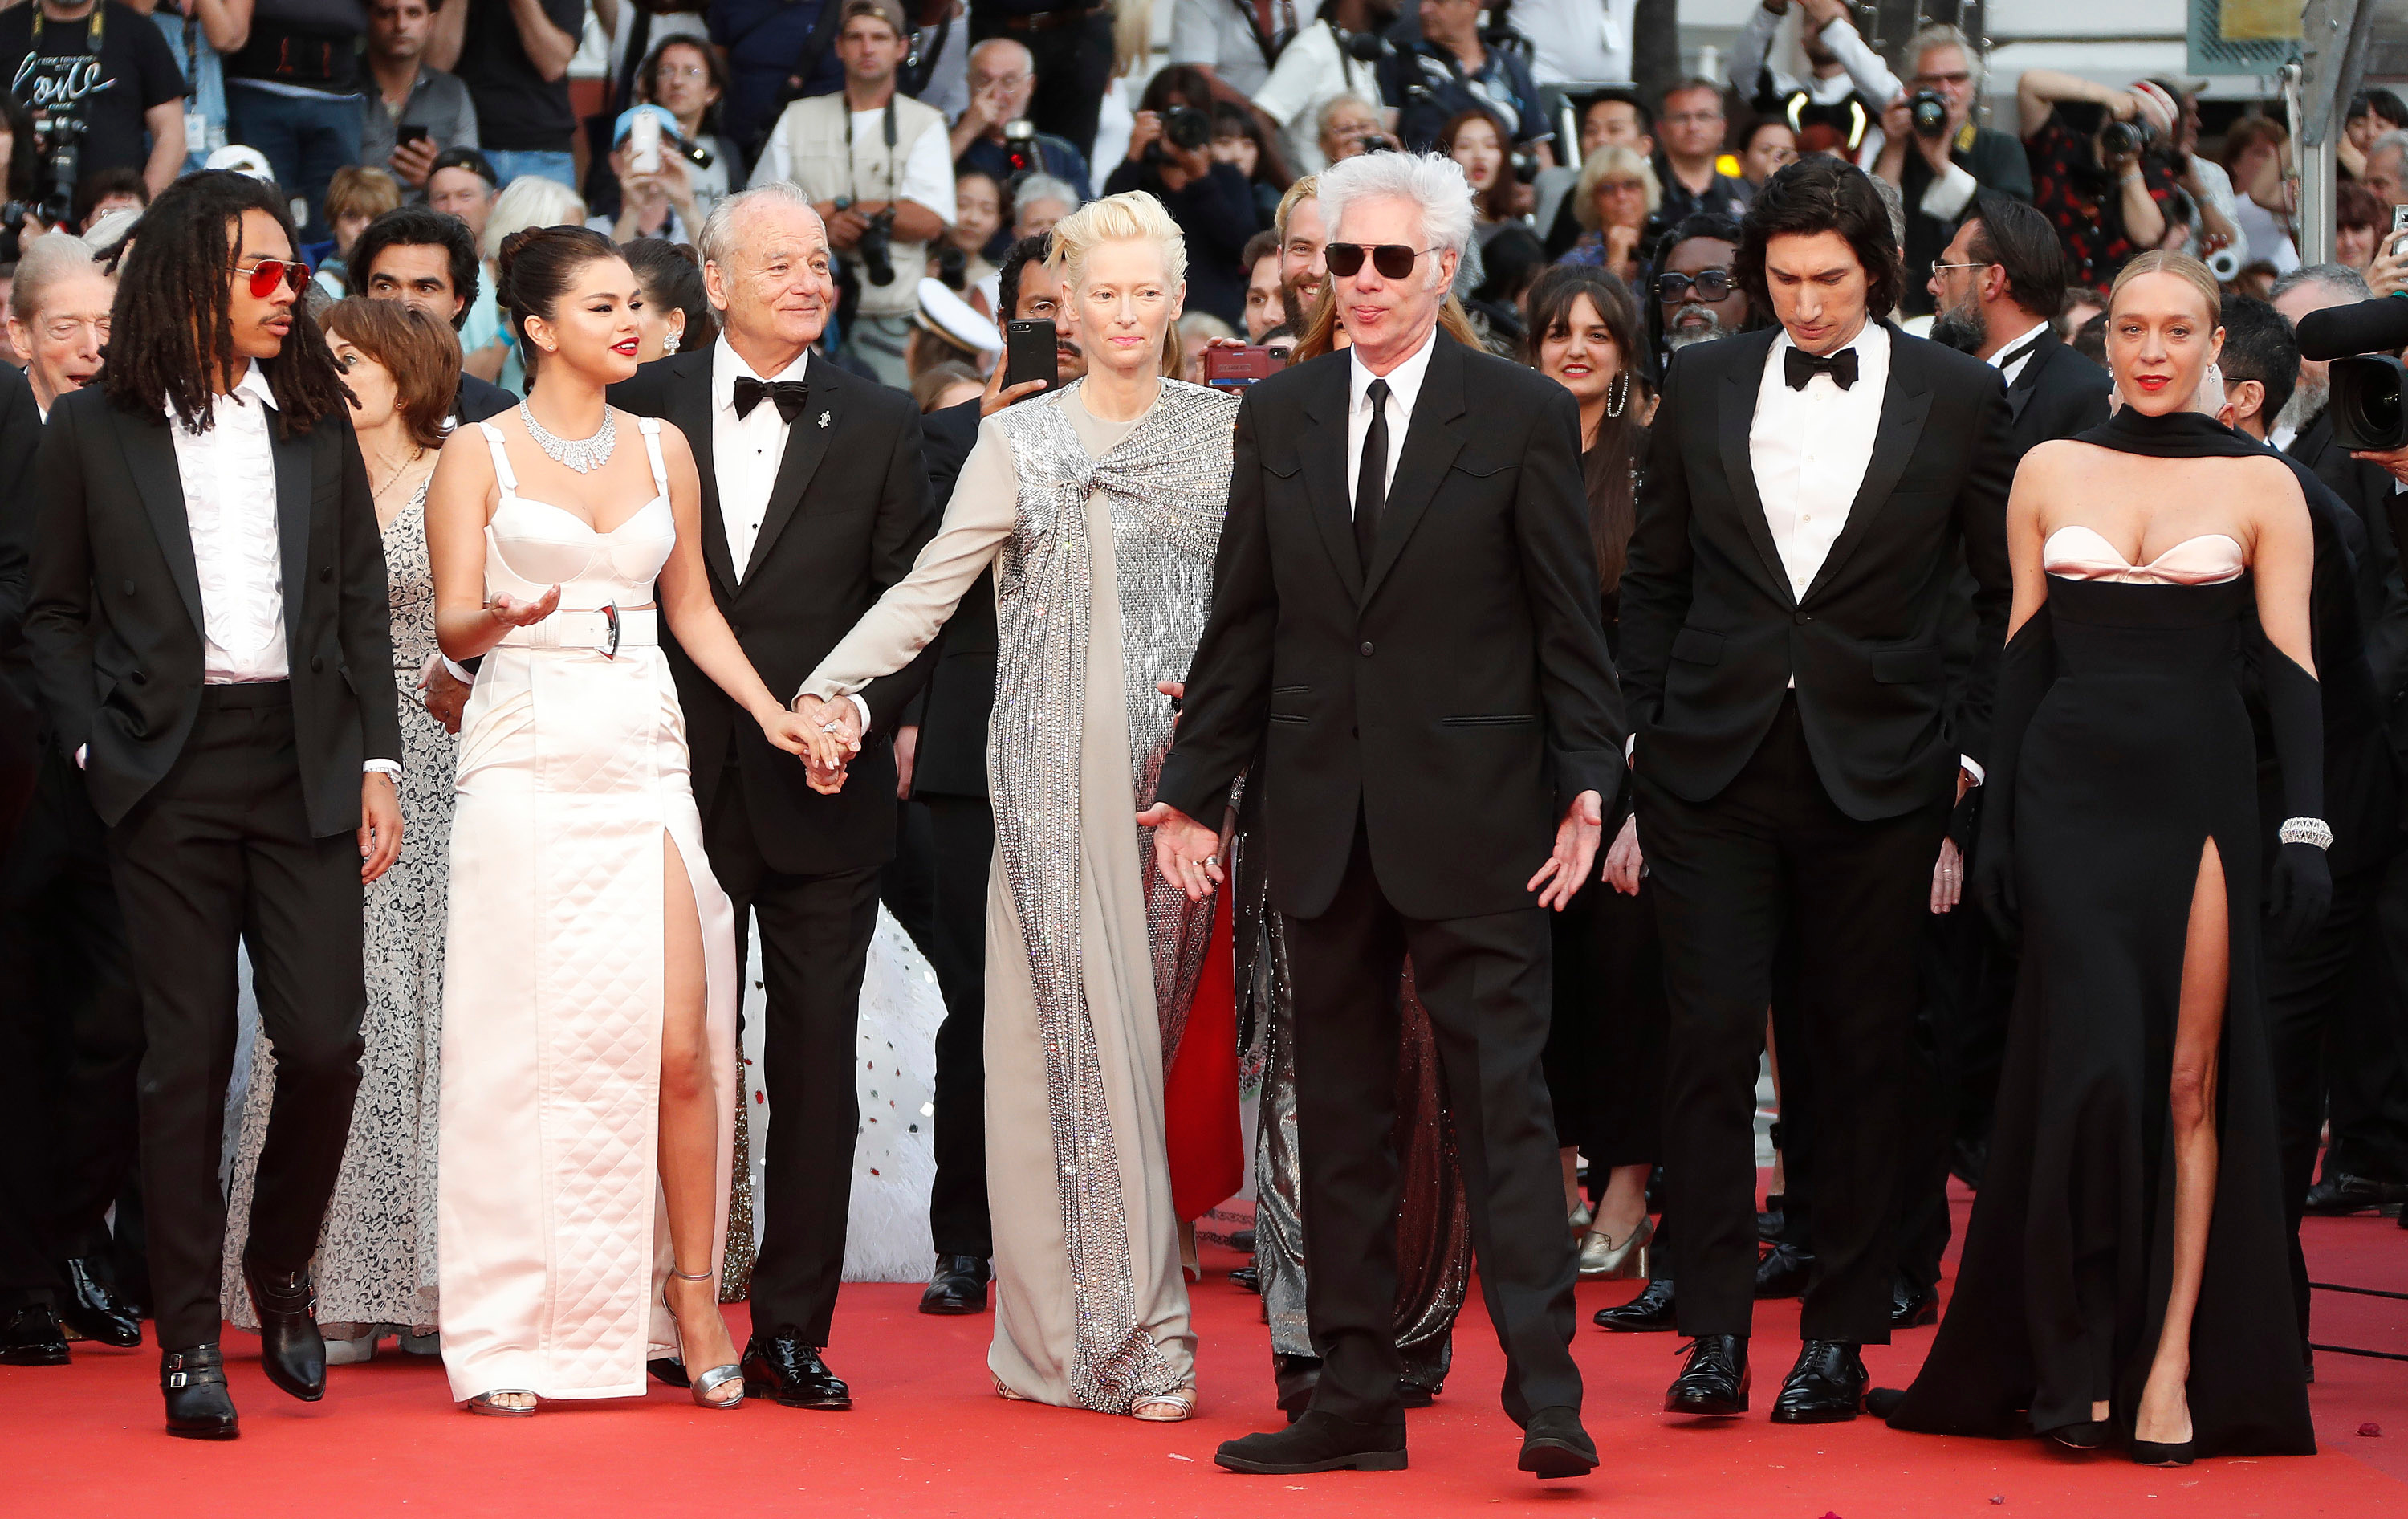 Luka Sabbat, Selena Gomez, Bill Murray, Tilda Swinton, US director Jim Jarmusch, Adam Driver and Chloe Sevigny arrive for the screening of â??The Dead Don't Die' and the Opening Ceremony of the 72nd annual Cannes Film Festival in Cannes, France, 14 May 2019. Presented in competition, the movie opens the festival which runs from 14 to 25 May.The Dead Don't Die Premiere - 72nd Cannes Film Festival, France - 14 May 2019